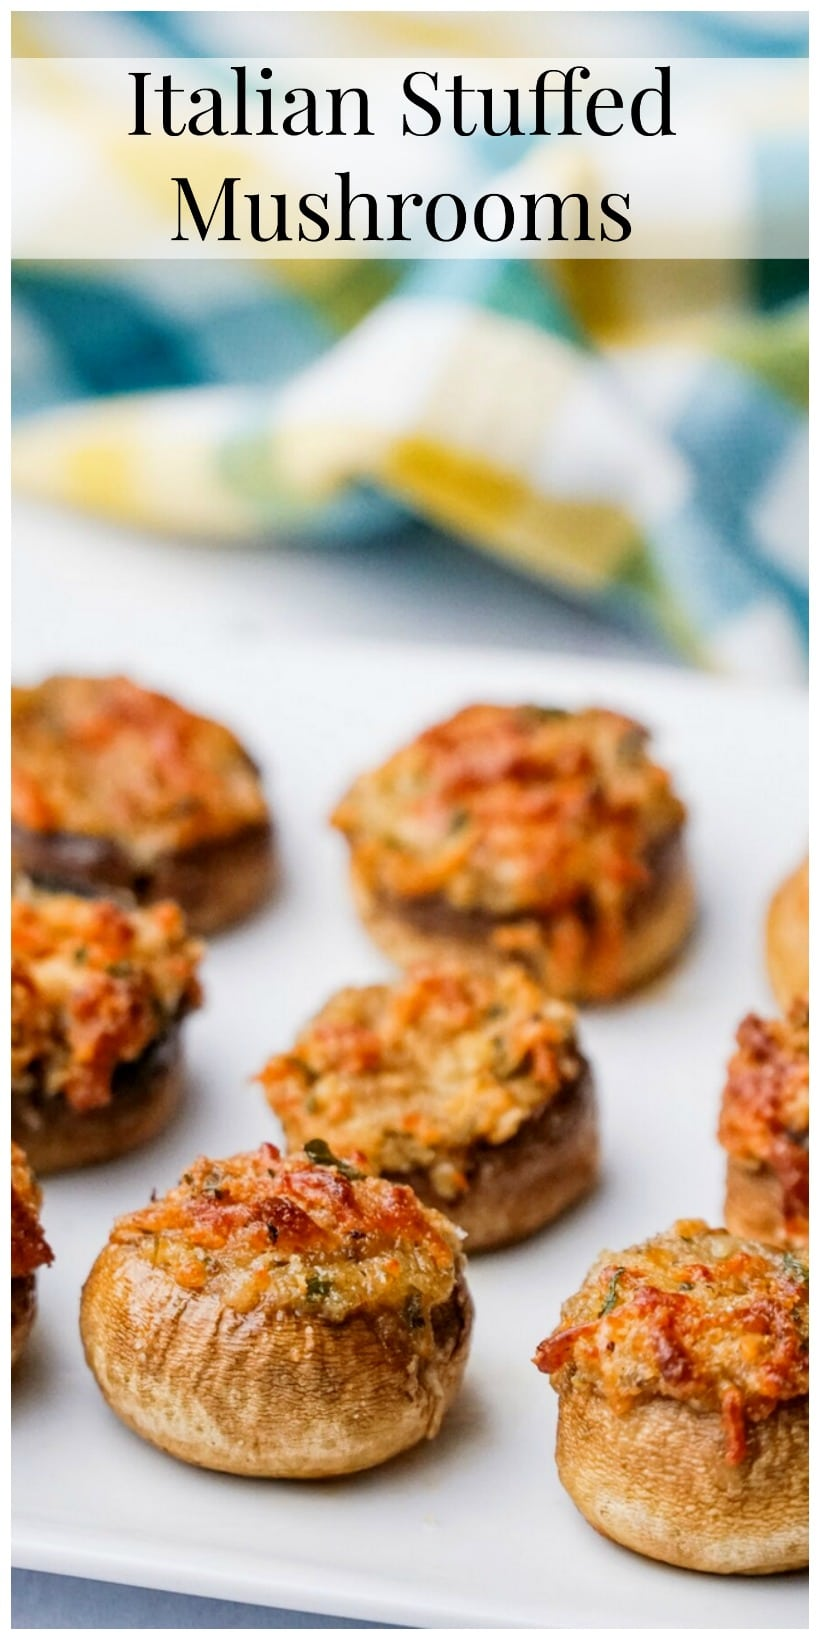 These Italian Stuffed Mushrooms are the perfect party appetizer for any occasion.  Put these stuffed mushrooms together early in the day and bake them off right before guests arrive. #noblepig #mushrooms #italianstuffedmushrooms #partyappetizer #partyappetizerforacrowd #mushrromappetizer #stuffedmushrooms #italianfood #italianappetizer #partyfood via @cmpollak1